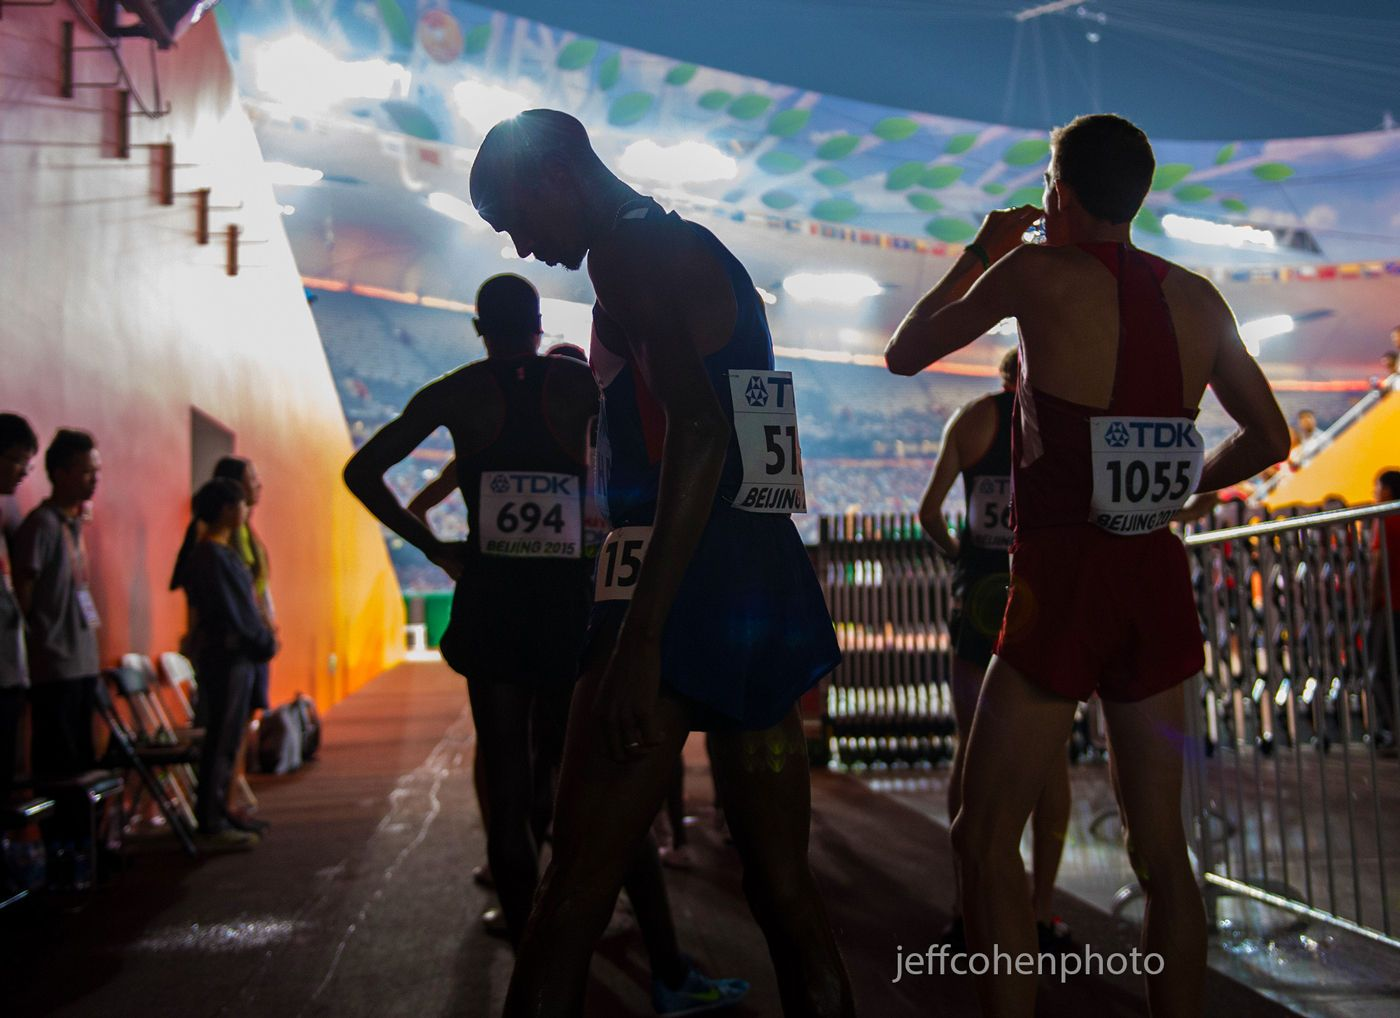 1beijing2015_night_8_mo_tunnel_3_jeff_cohen_photo_30673_web.jpg